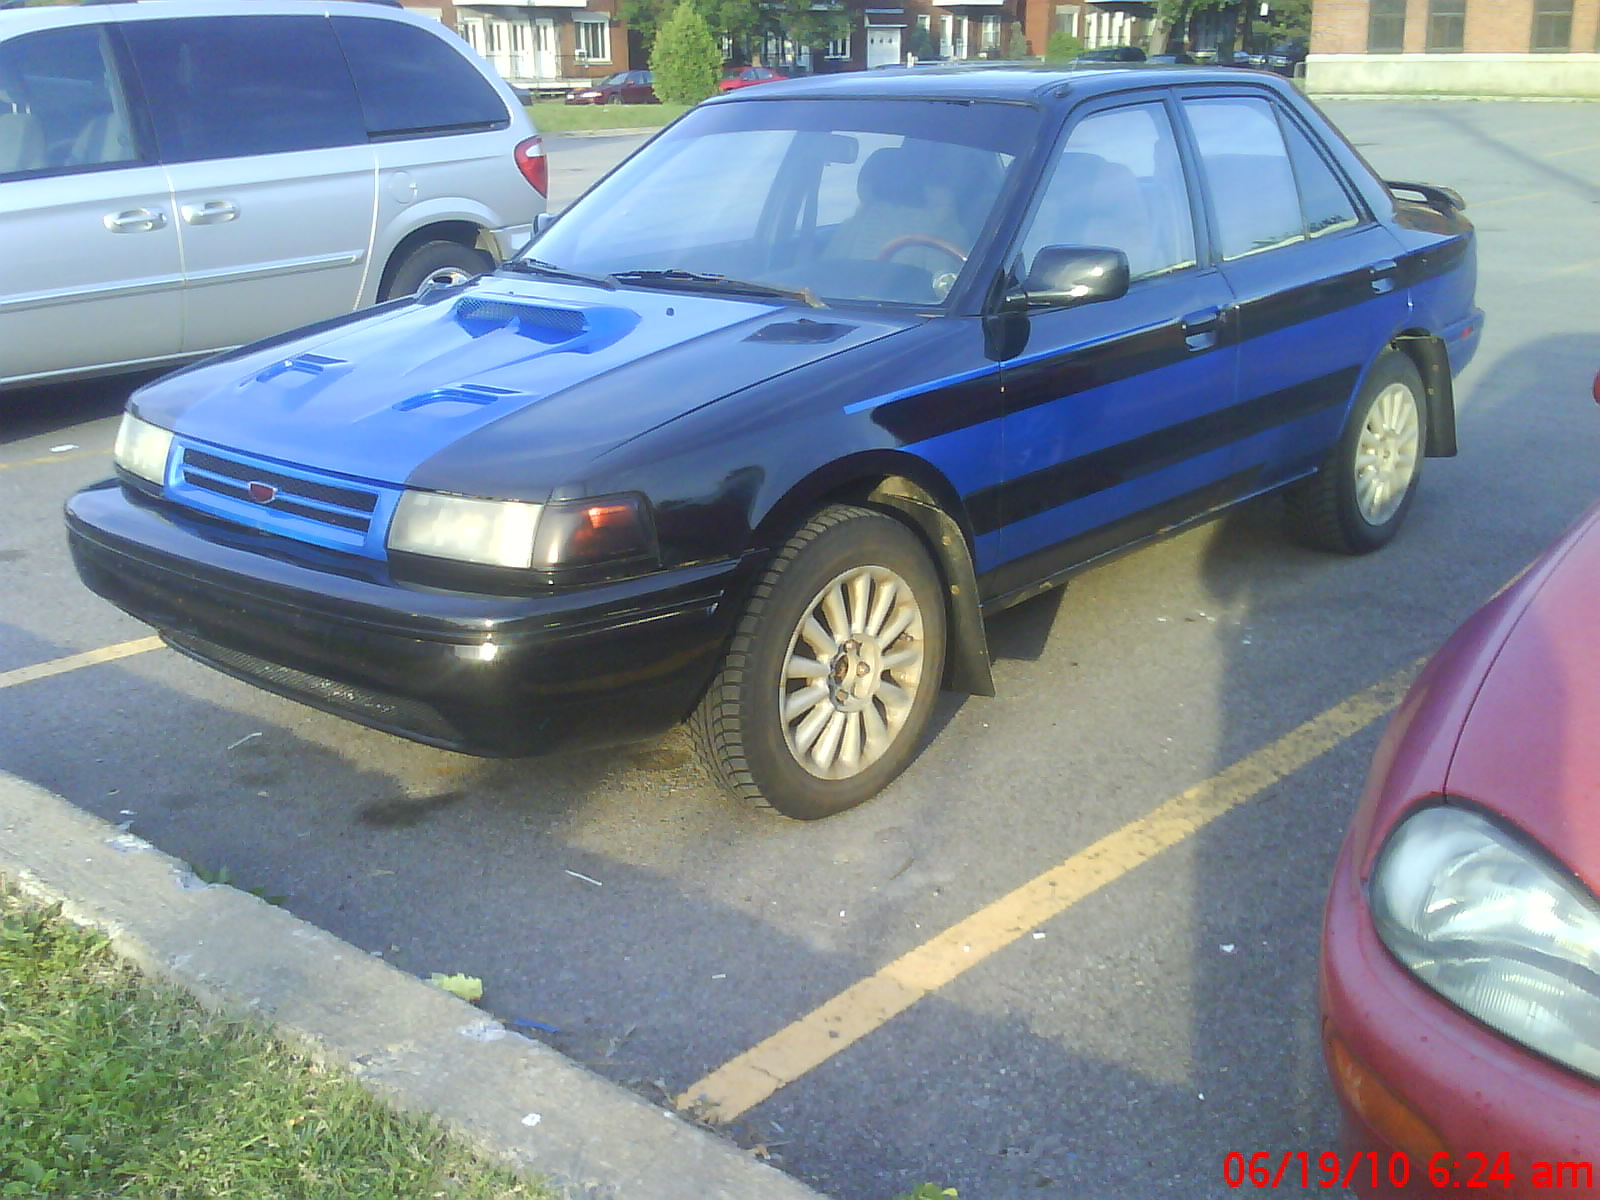 1990 mazda protege information and photos neo drive neo drive